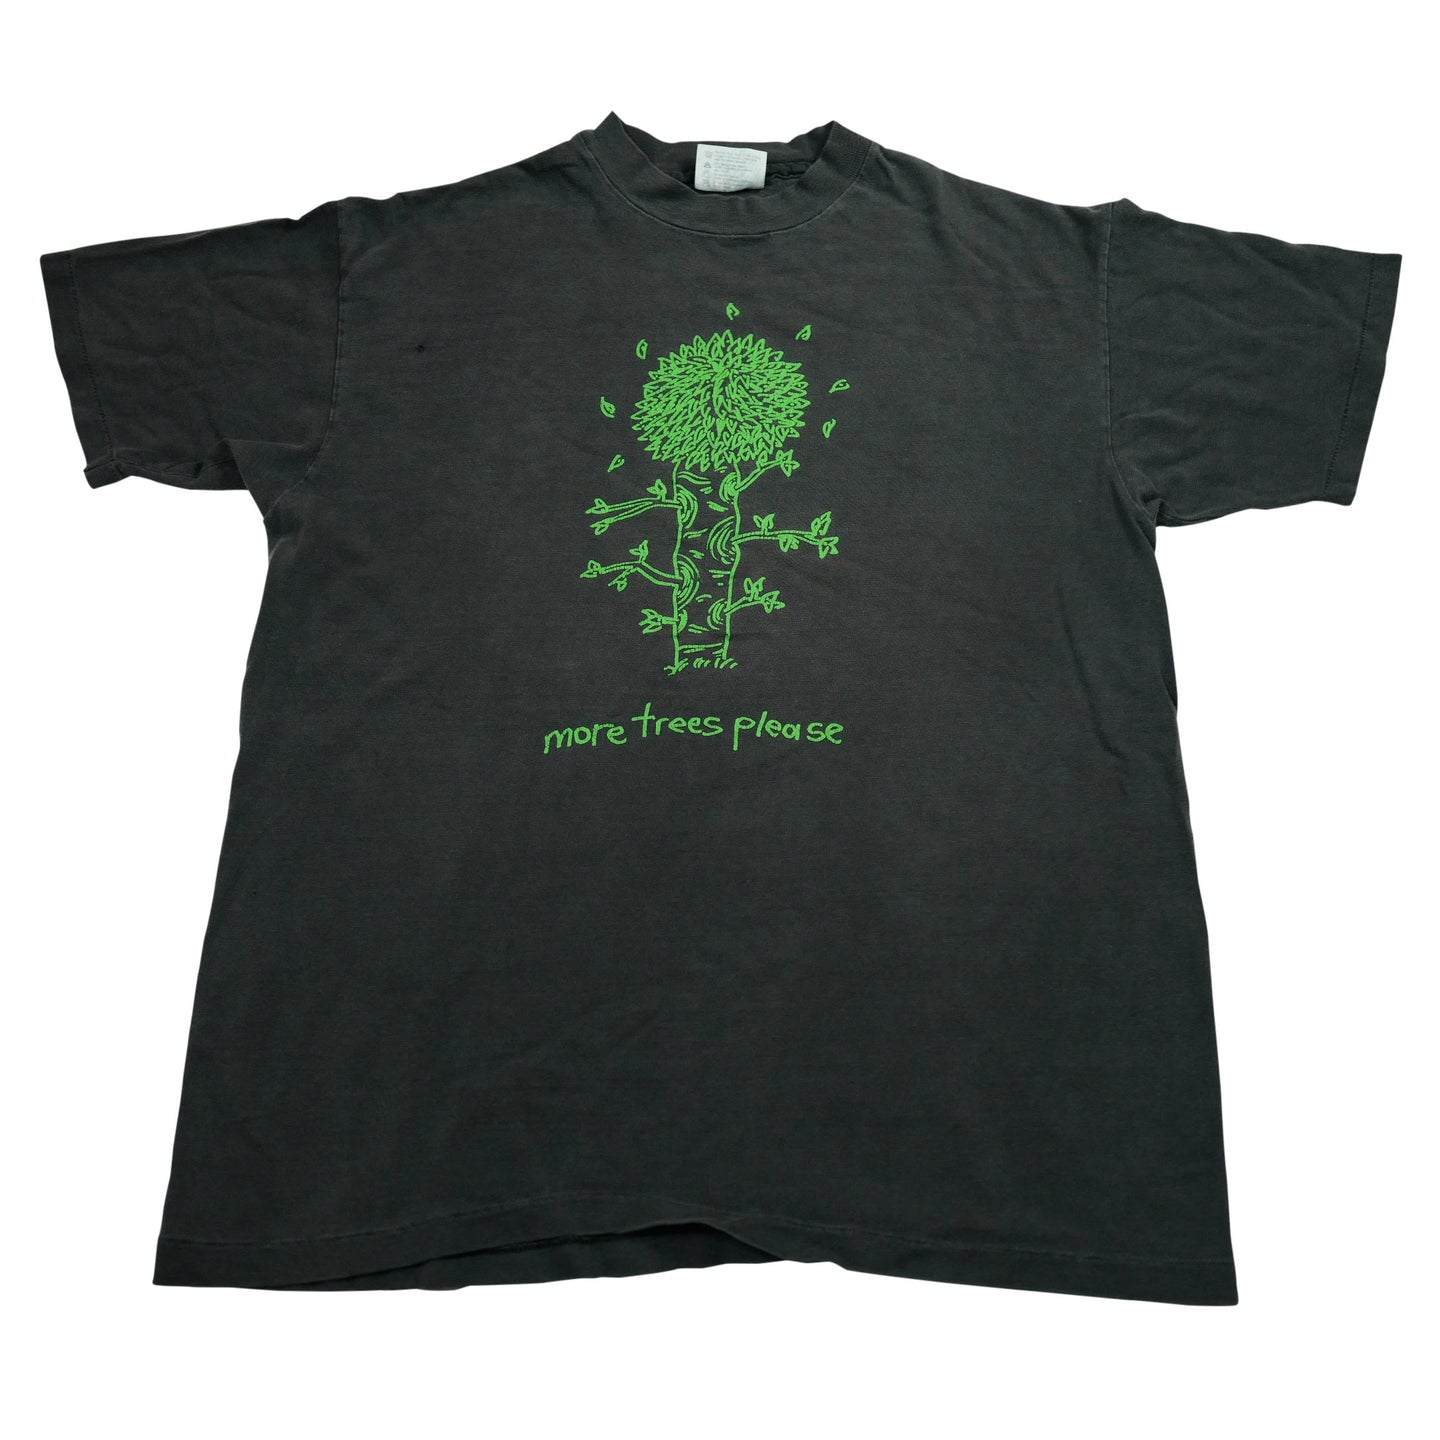 Vintage 90's More Trees Please Graphic Tee